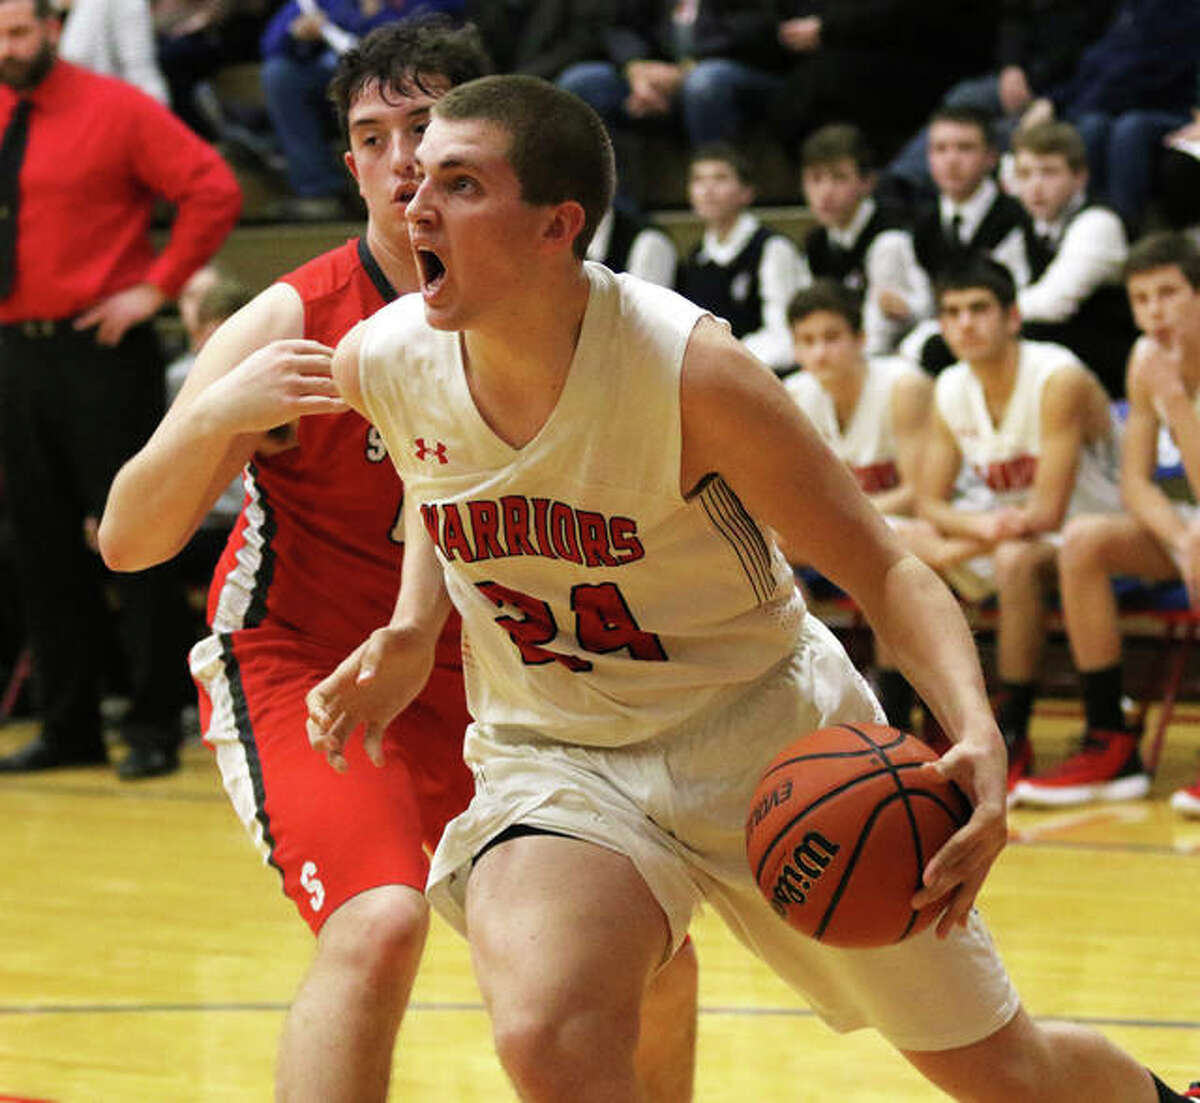 Calhoun's Ben Eberlin (24) drives baseline on Staunton's Frank Goss in a Warriors win Dec. 30 at the Carlinville Holiday Tournament.